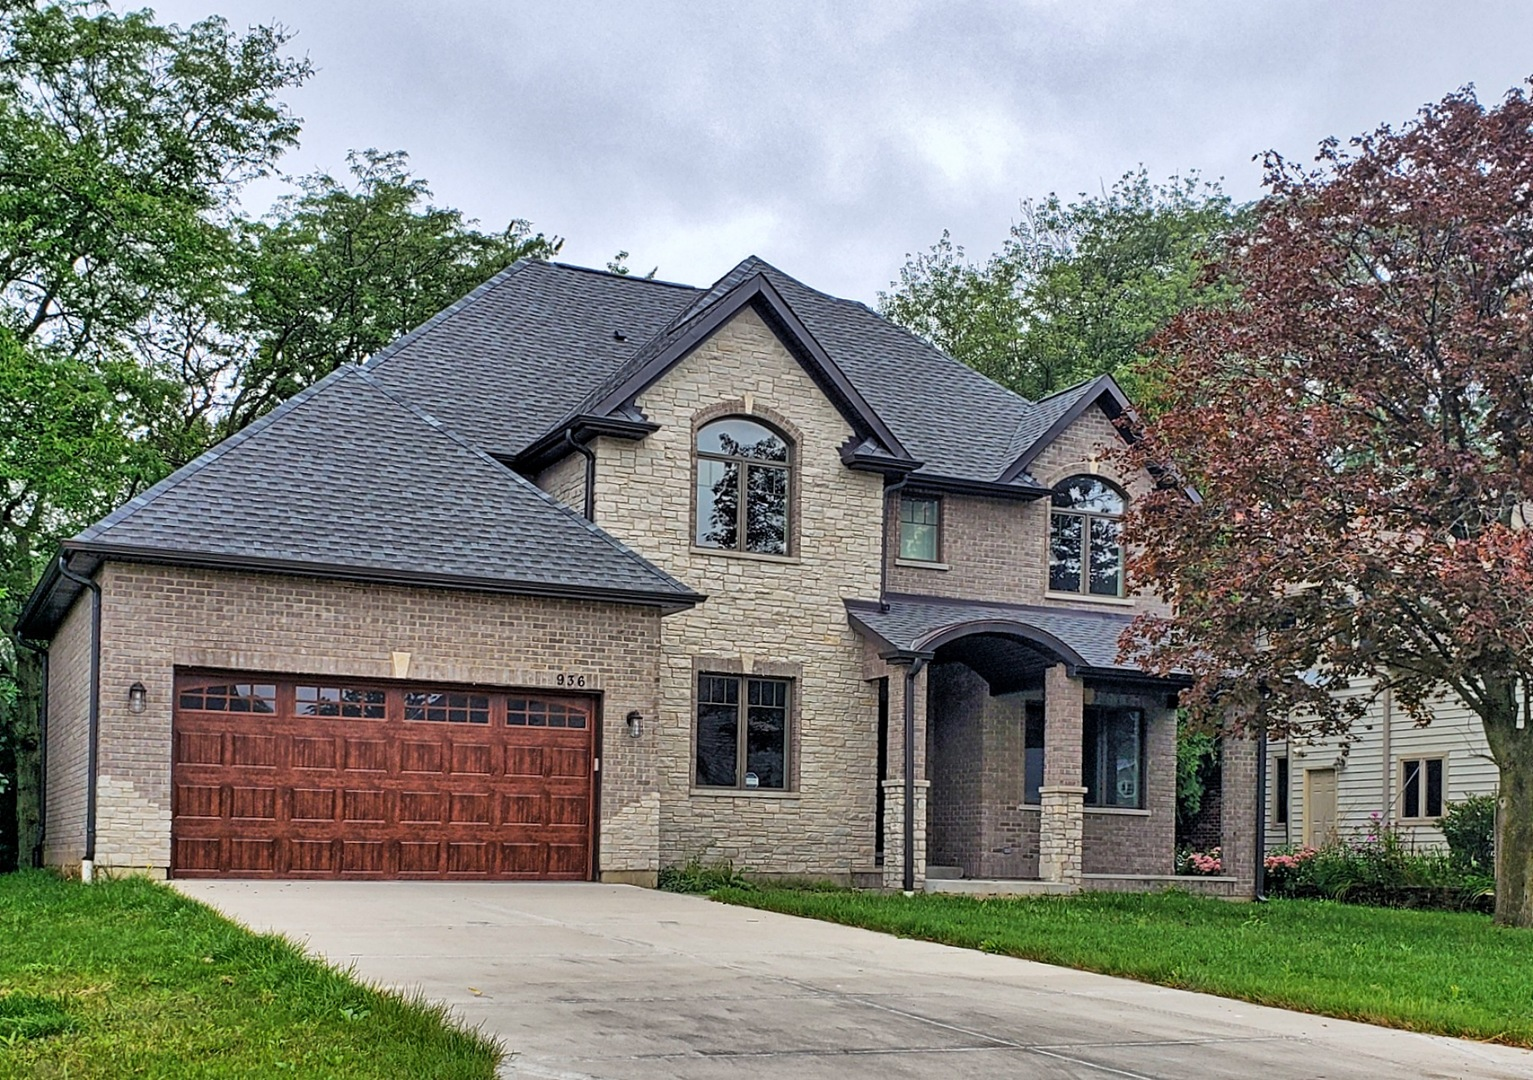 936 SOUTH QUINCY STREET, HINSDALE, IL 60521